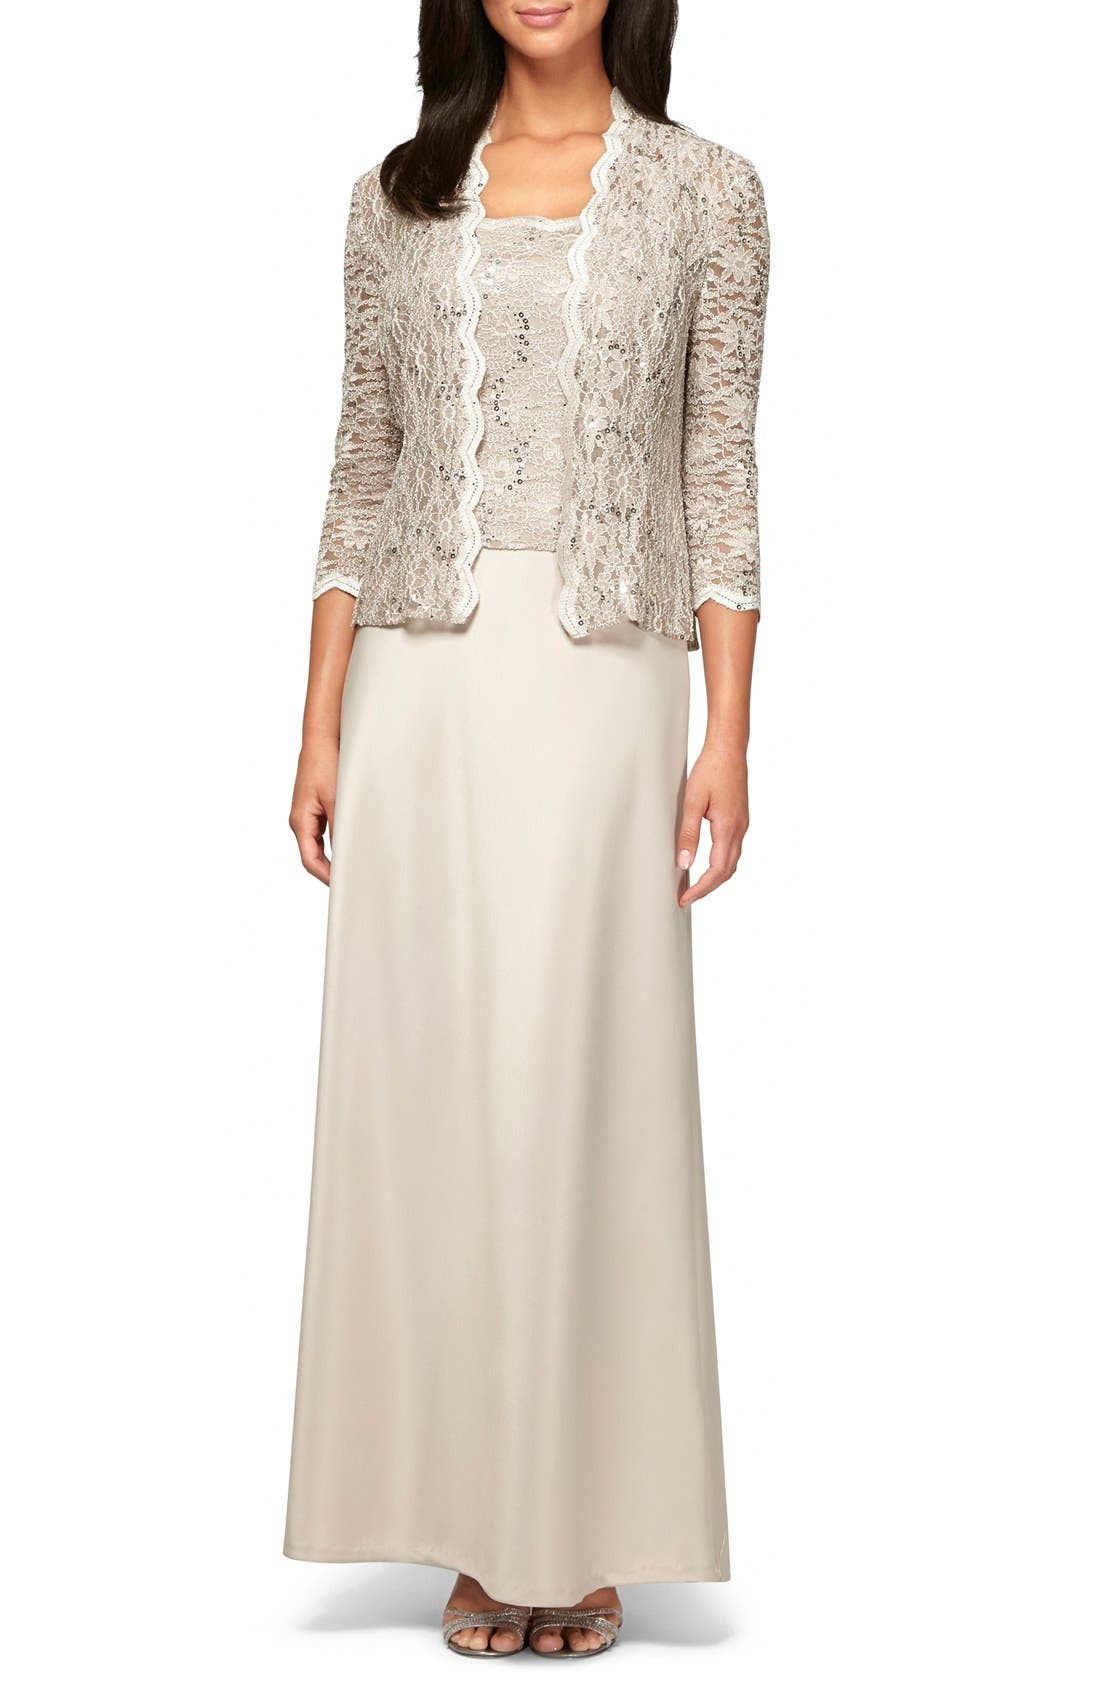 Vintage Inspired Wedding Dress | Vintage Style Wedding Dresses Womens Alex Evenings Sequin Lace  Satin Gown With Jacket Size 10 - Beige $209.00 AT vintagedancer.com